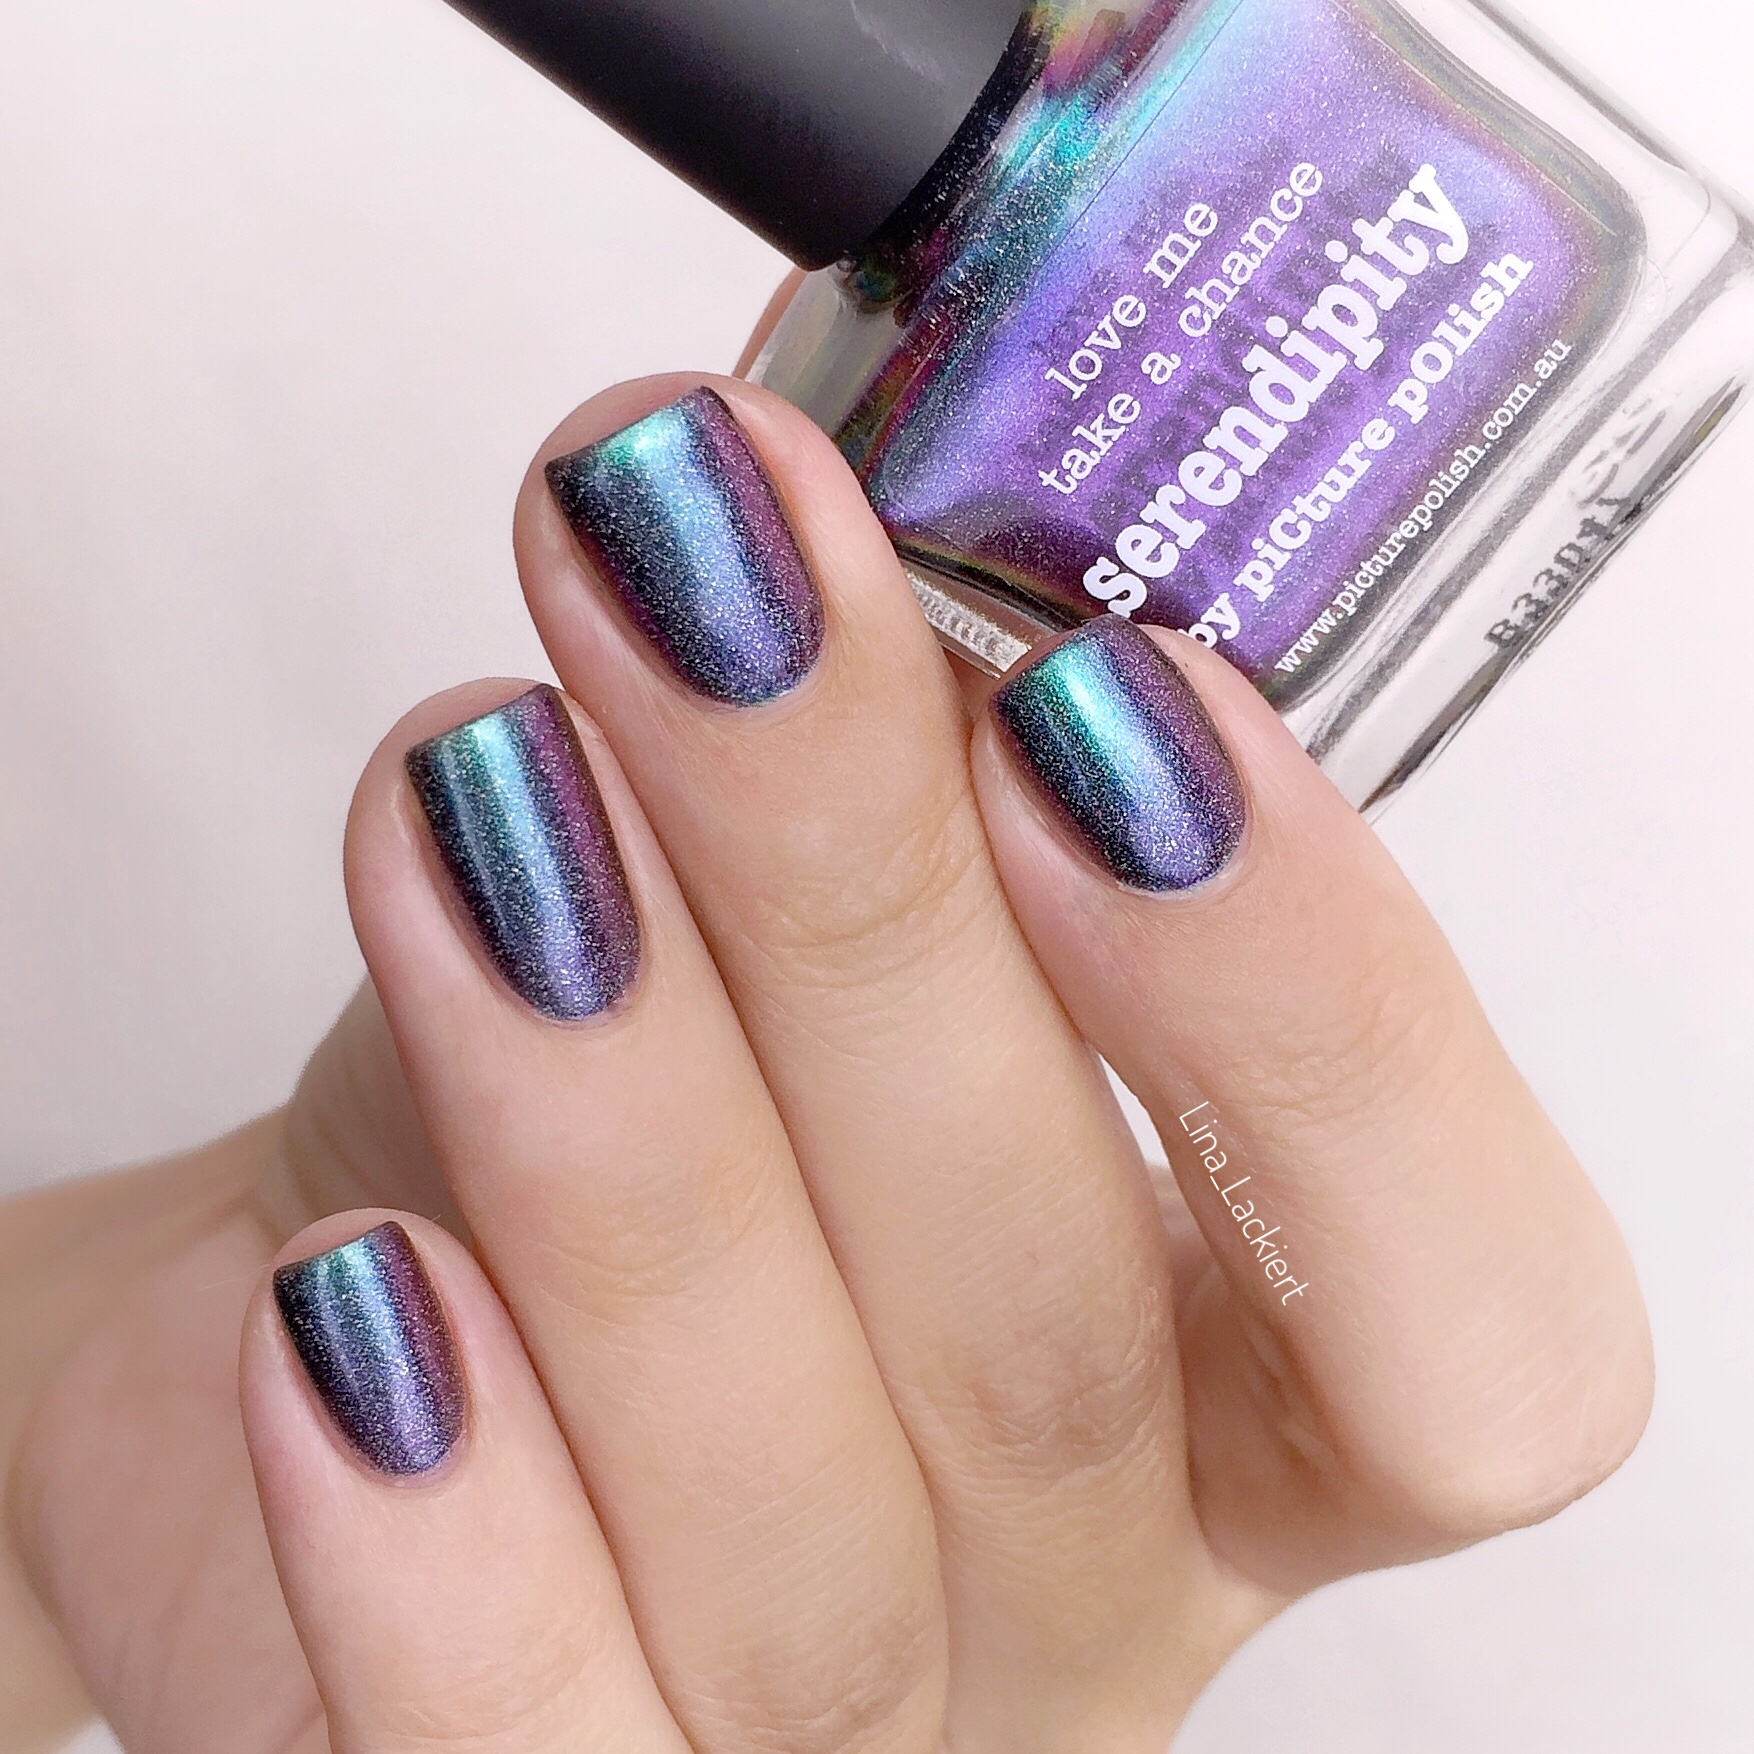 Serendipity von picture polish